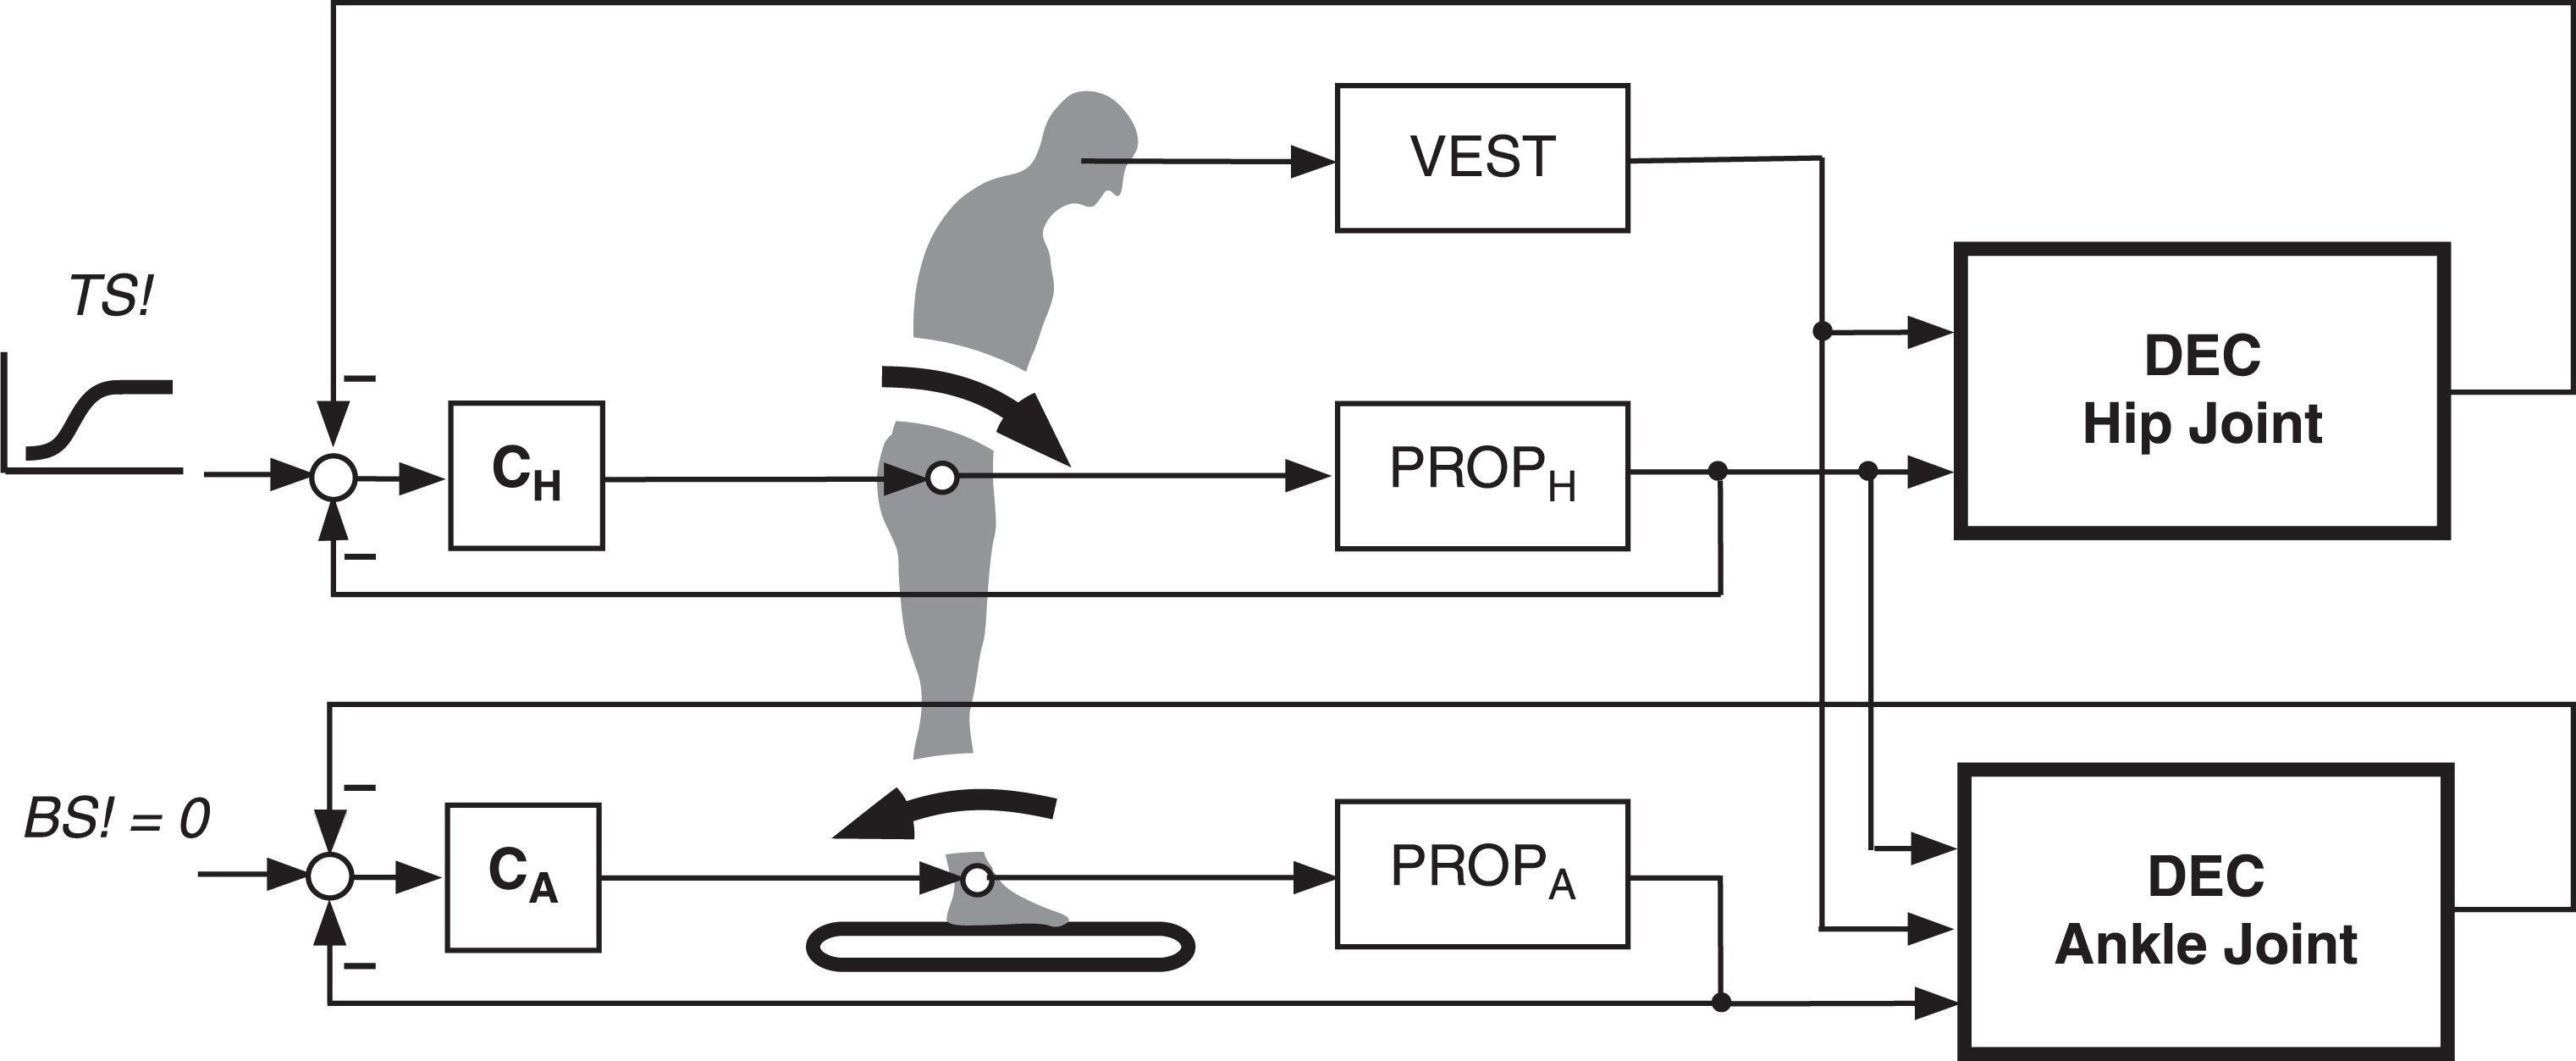 Emergence of movement synergy and postural adjustment from hierarchical DEC control (extended to include the hip joints in addition to the ankle joints). Trunk lean forward automatically leads to backward lean of legs. Simplified control model of corresponding double inverted pendulum biomechanics, where the desired trunk-in-space movement signal (